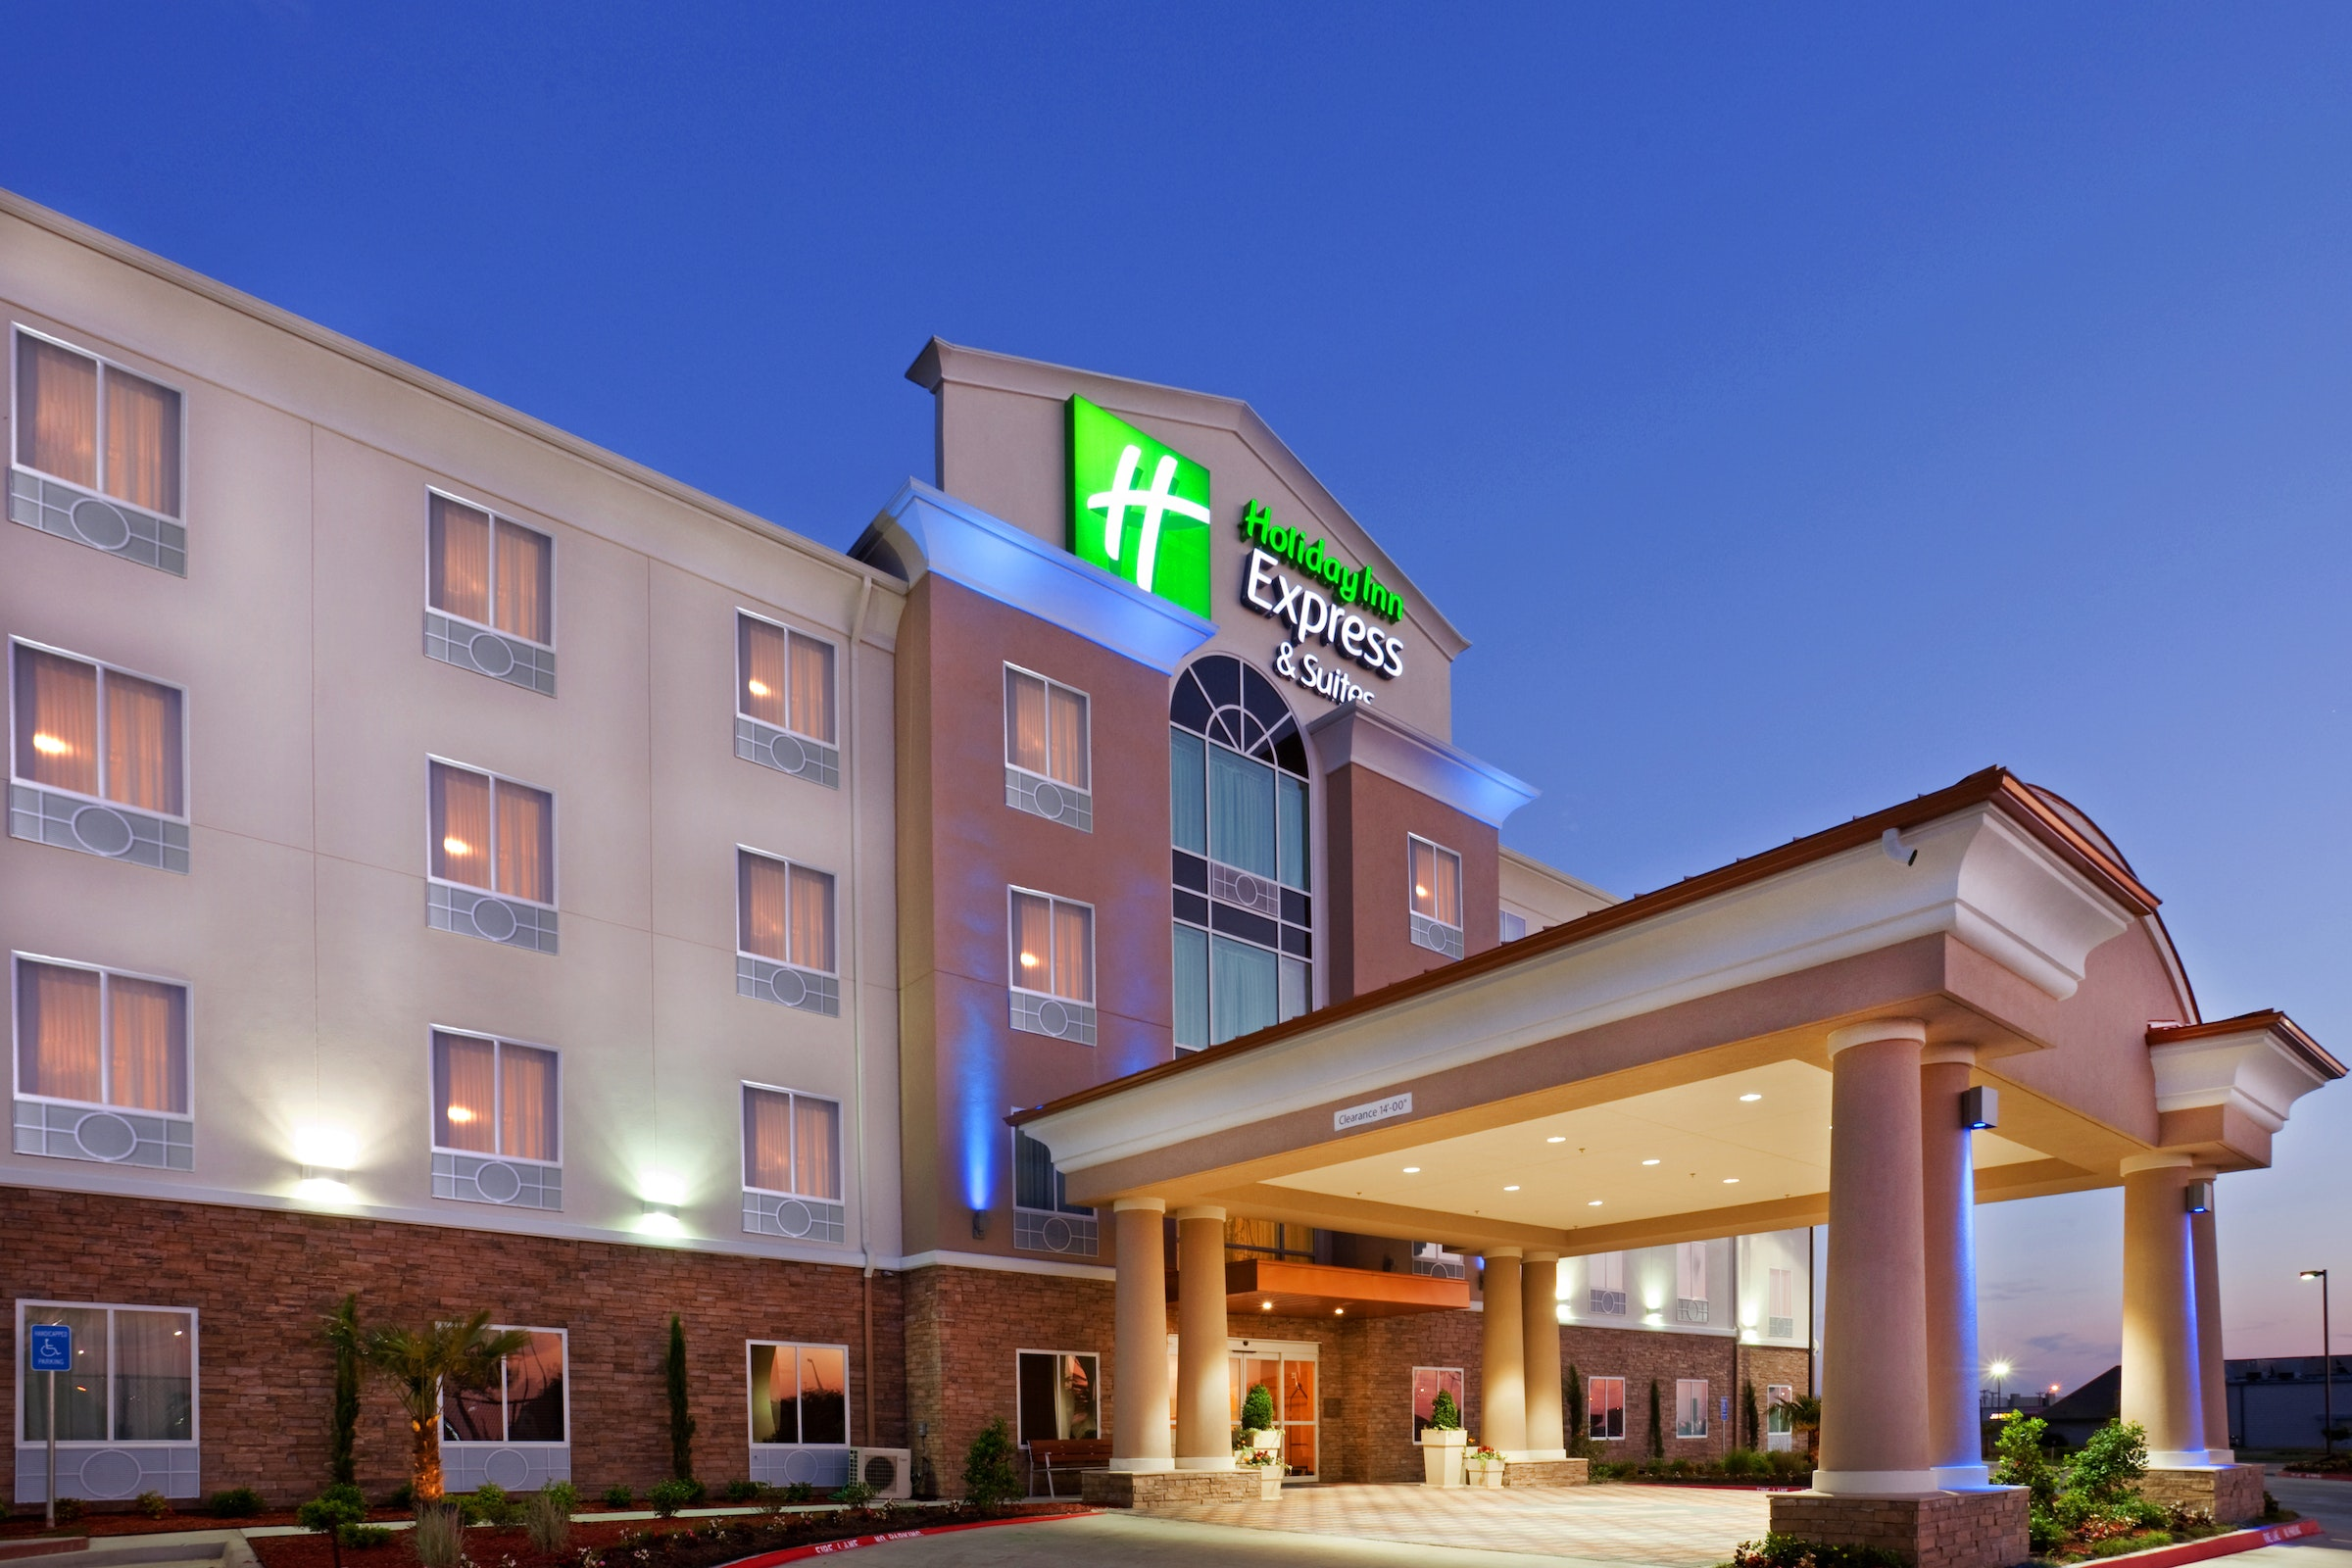 Holiday Inn Express & Suites Dallas W-I-30 Cockrell Hill in Beyond Dallas